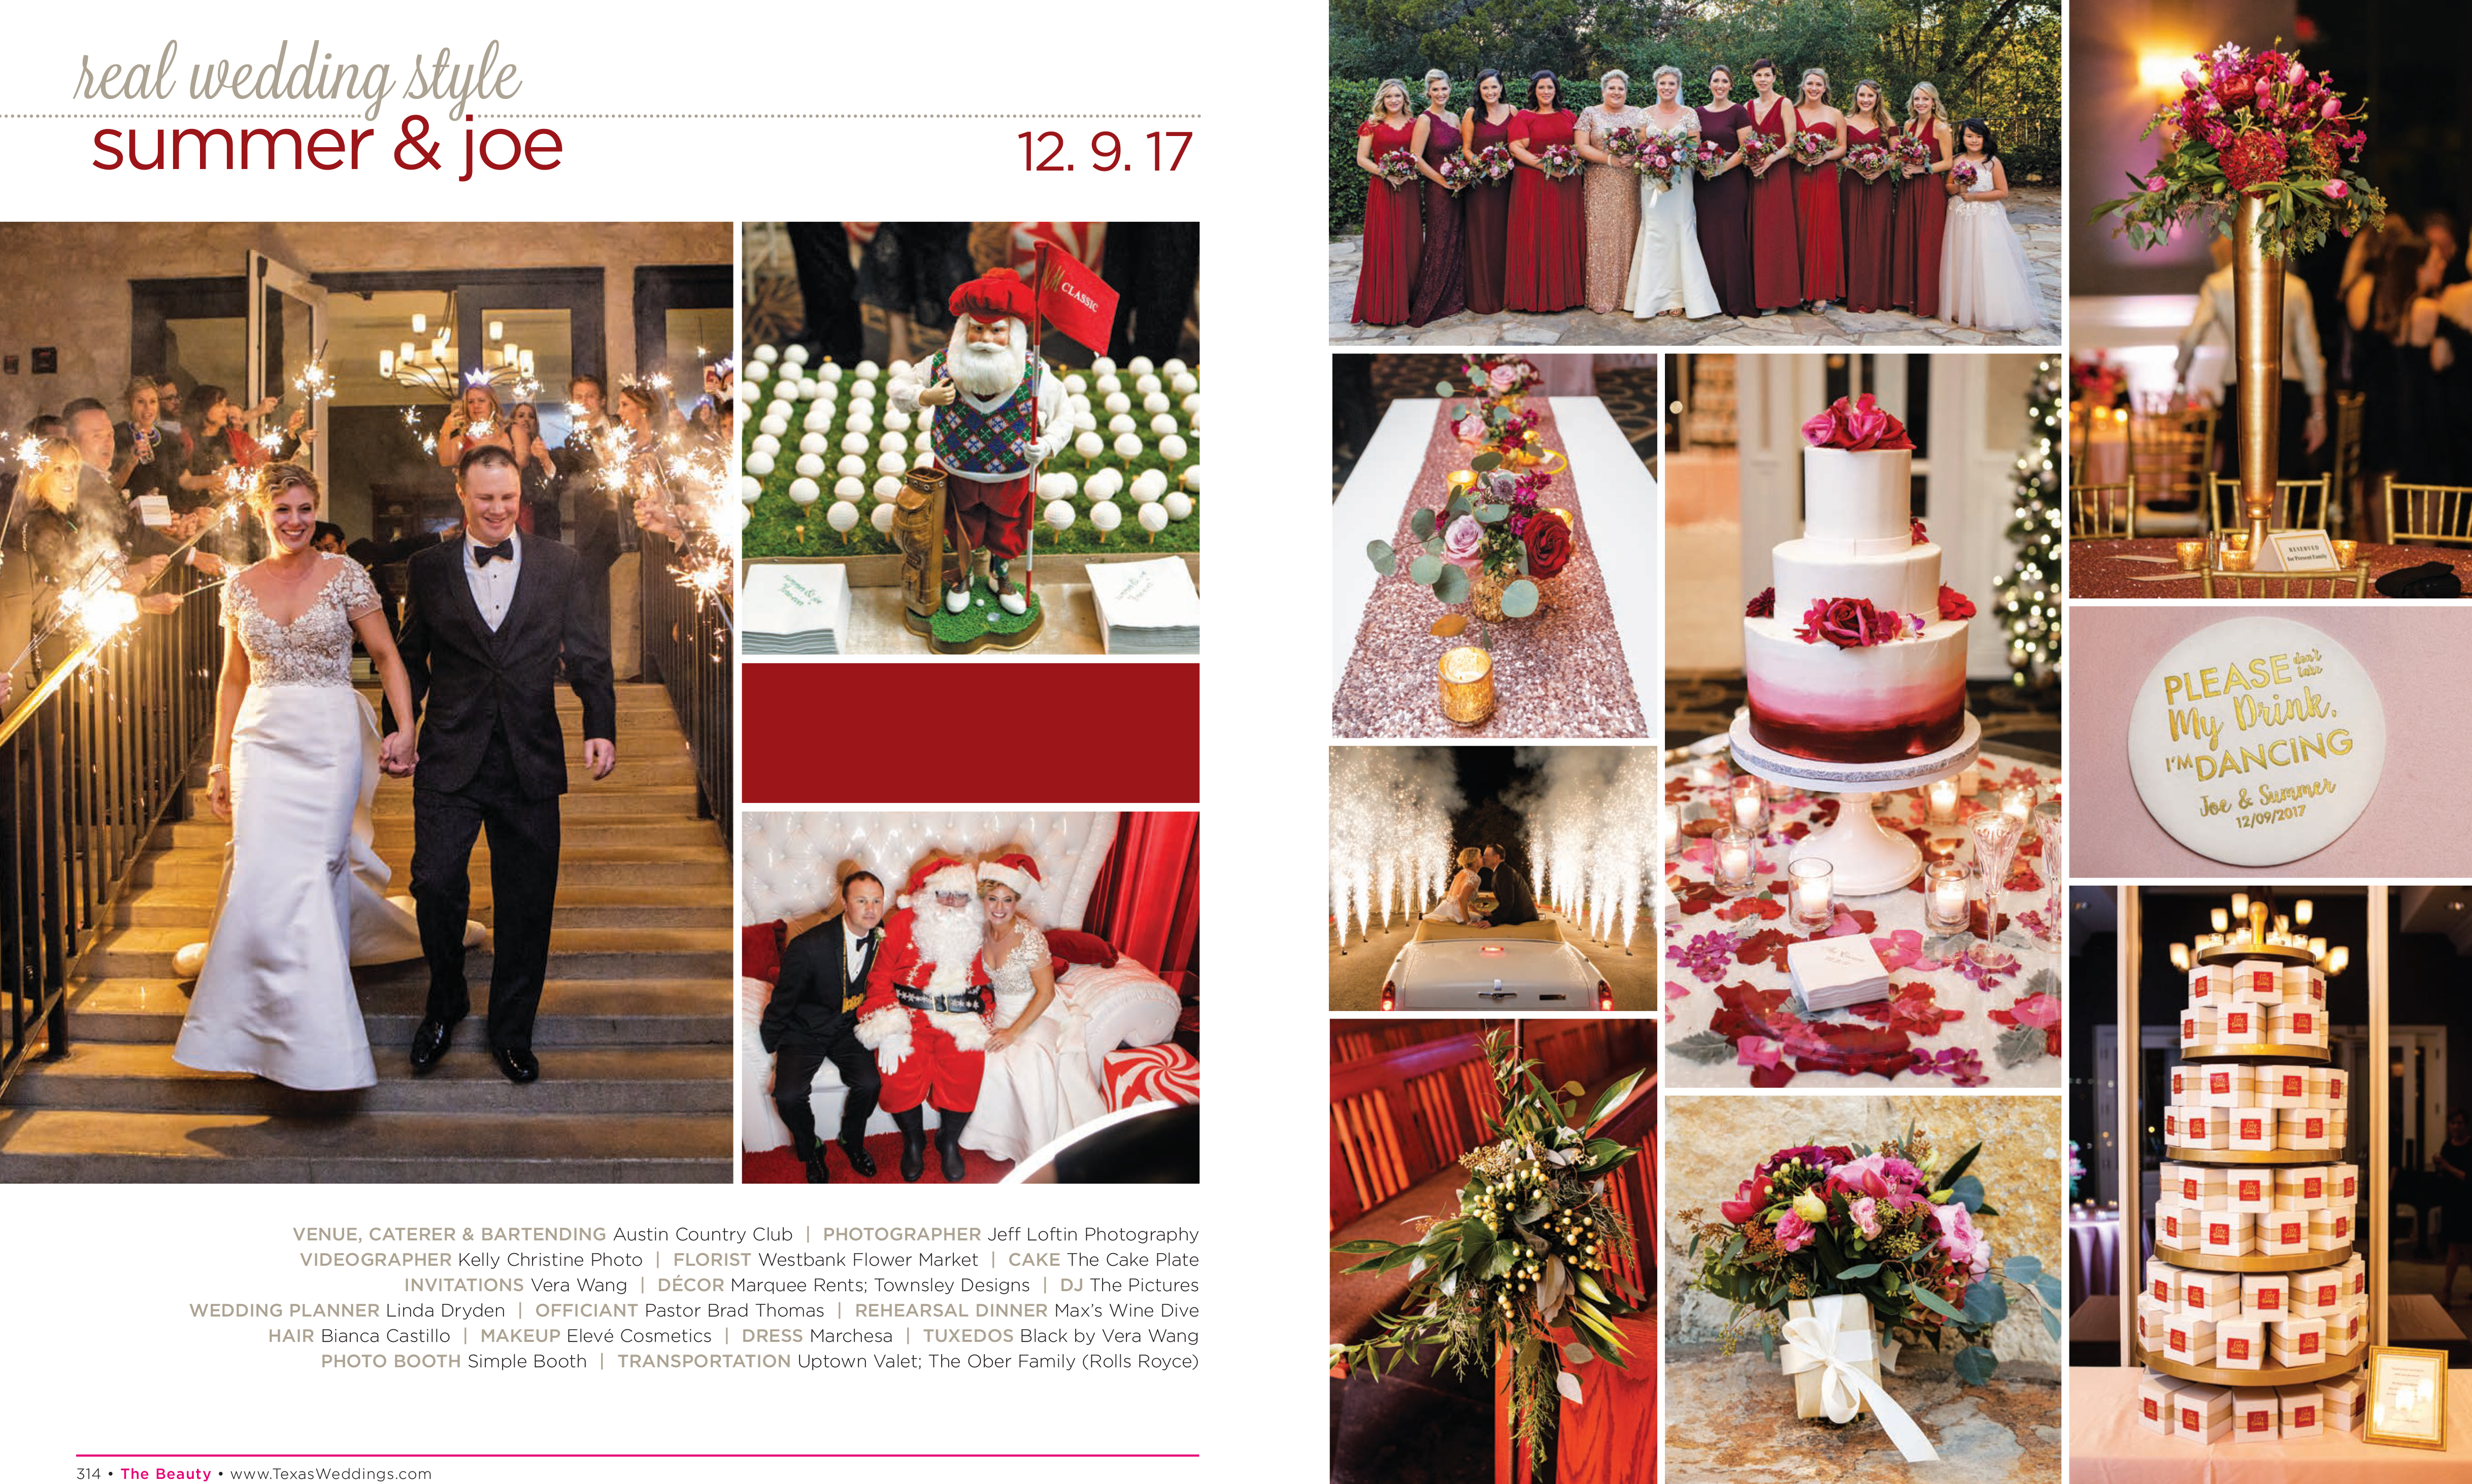 Summer & Joe in their Real Wedding Page in the Fall/Winter 2018 Texas Wedding Guide